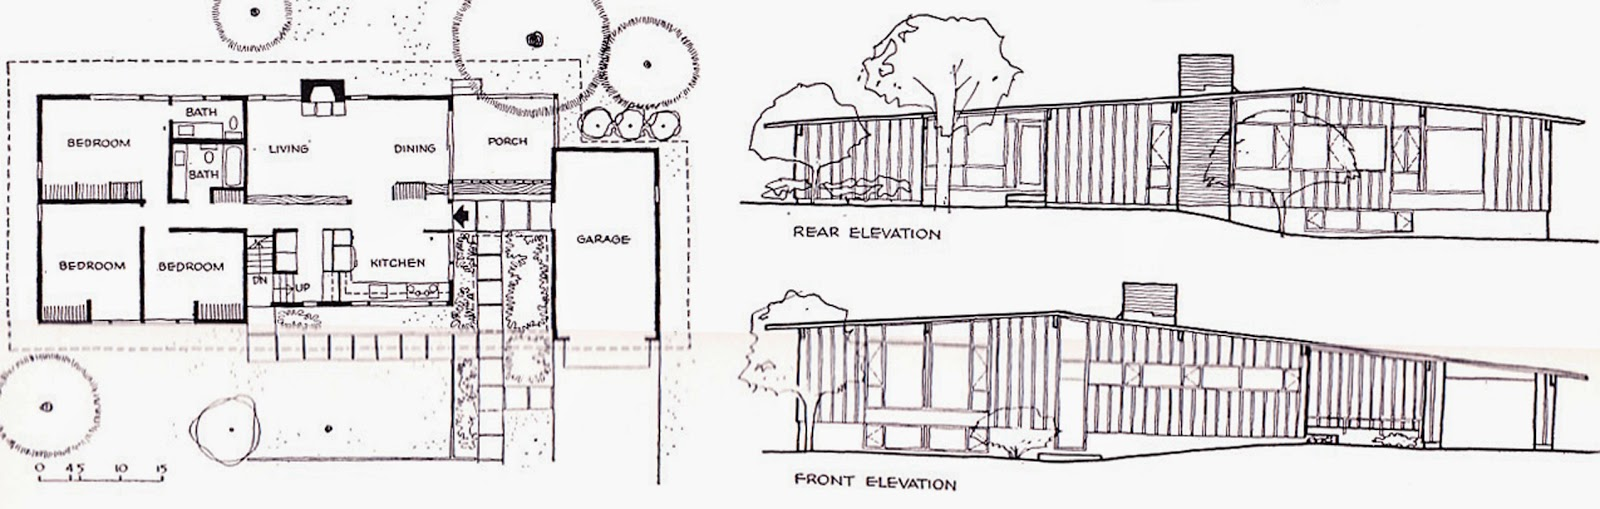 california ranch house floor plans home design and style